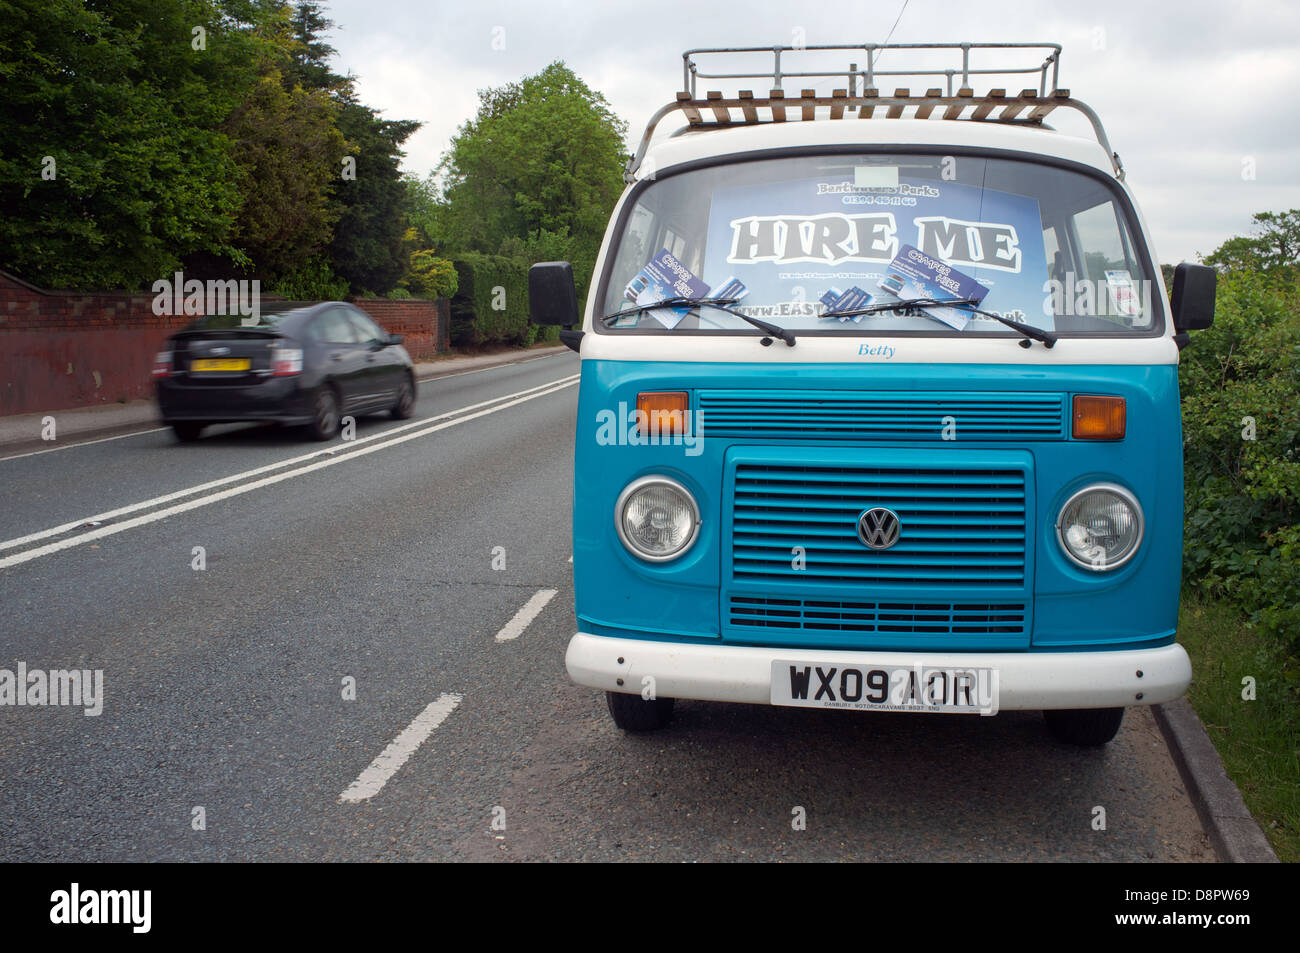 VW camper van to hire parked beside the A12 trunk road, Suffolk, UK. - Stock Image